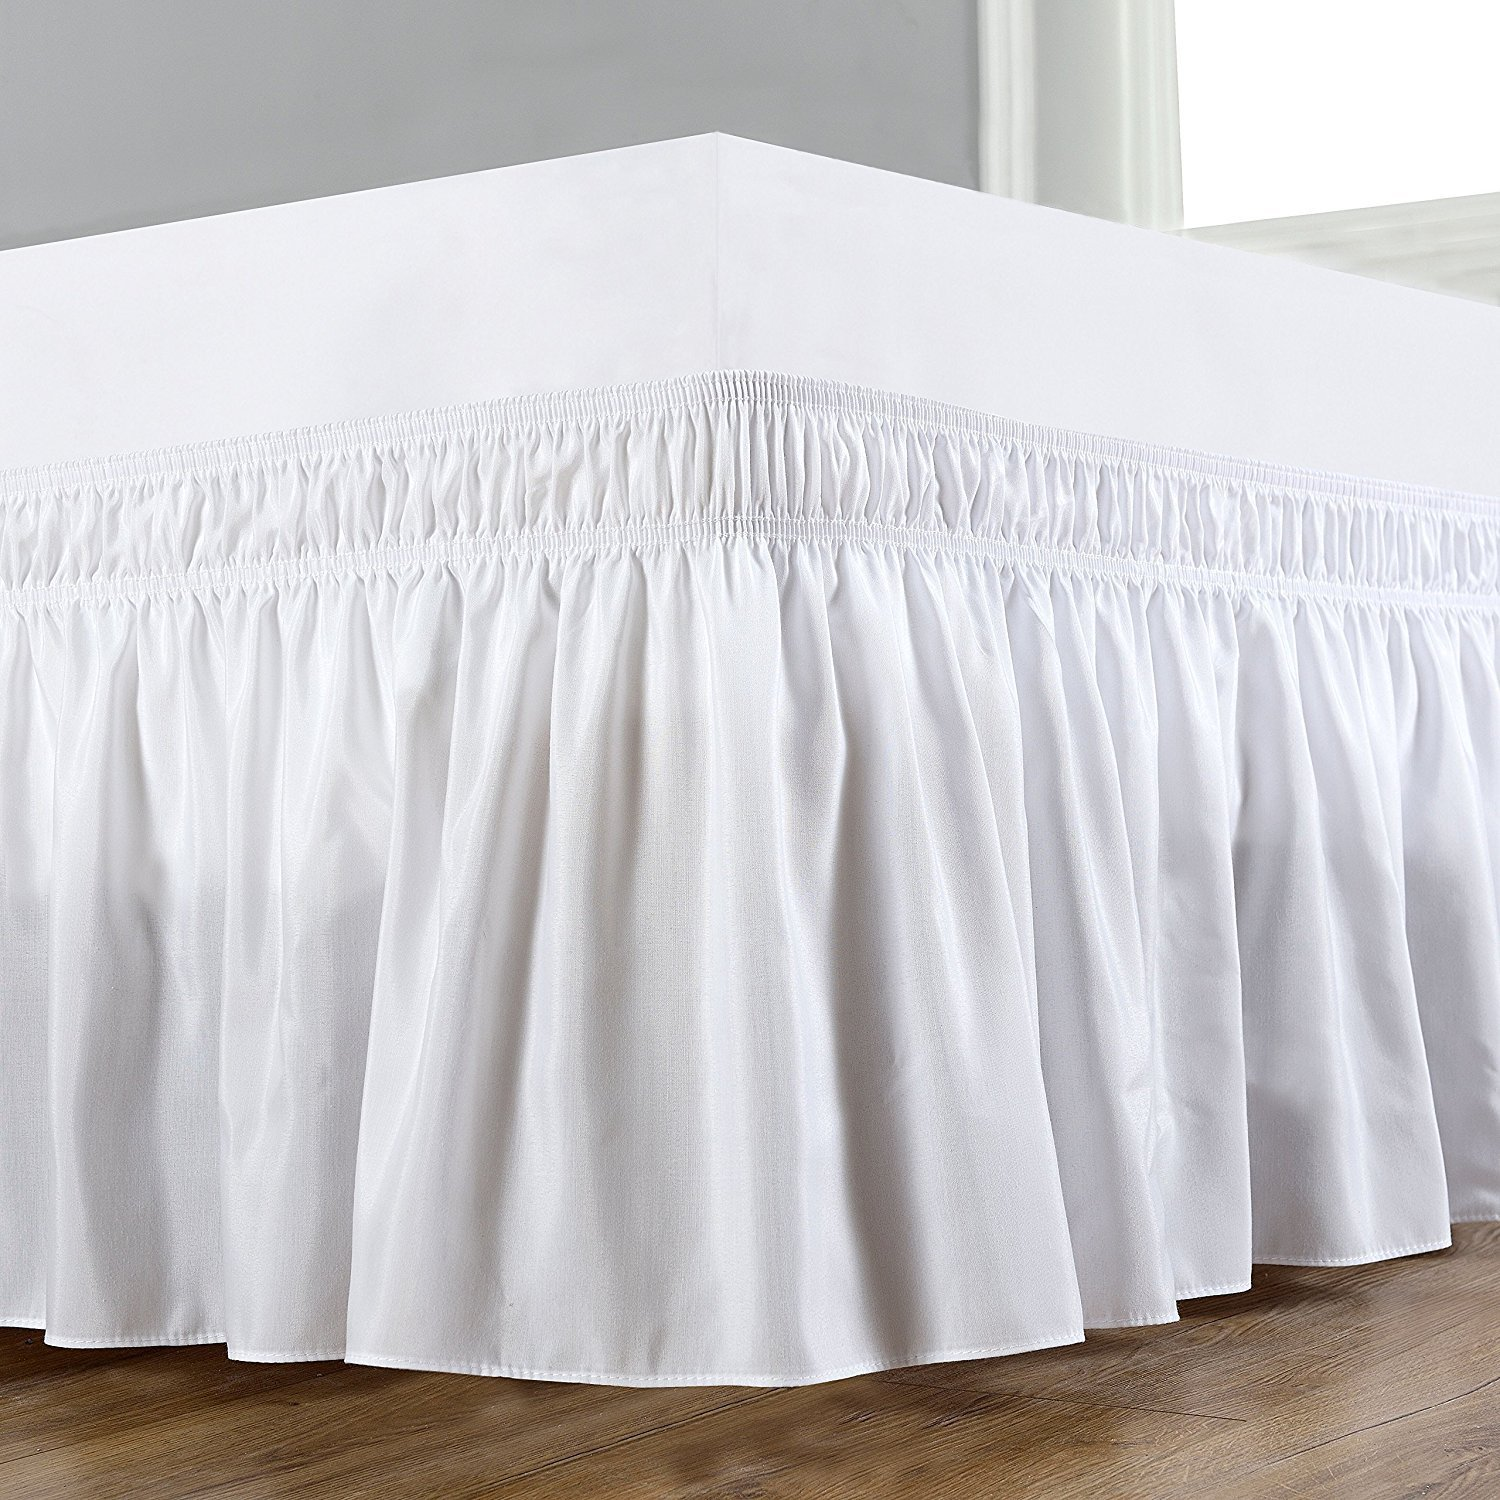 Great Craftsmanship Solid 400 Thread Count - Wrinkle & Fade Resistant - Egyptian Quality Wrap Around Elastic Bed Skirt with 15-inch Drop - White - California King